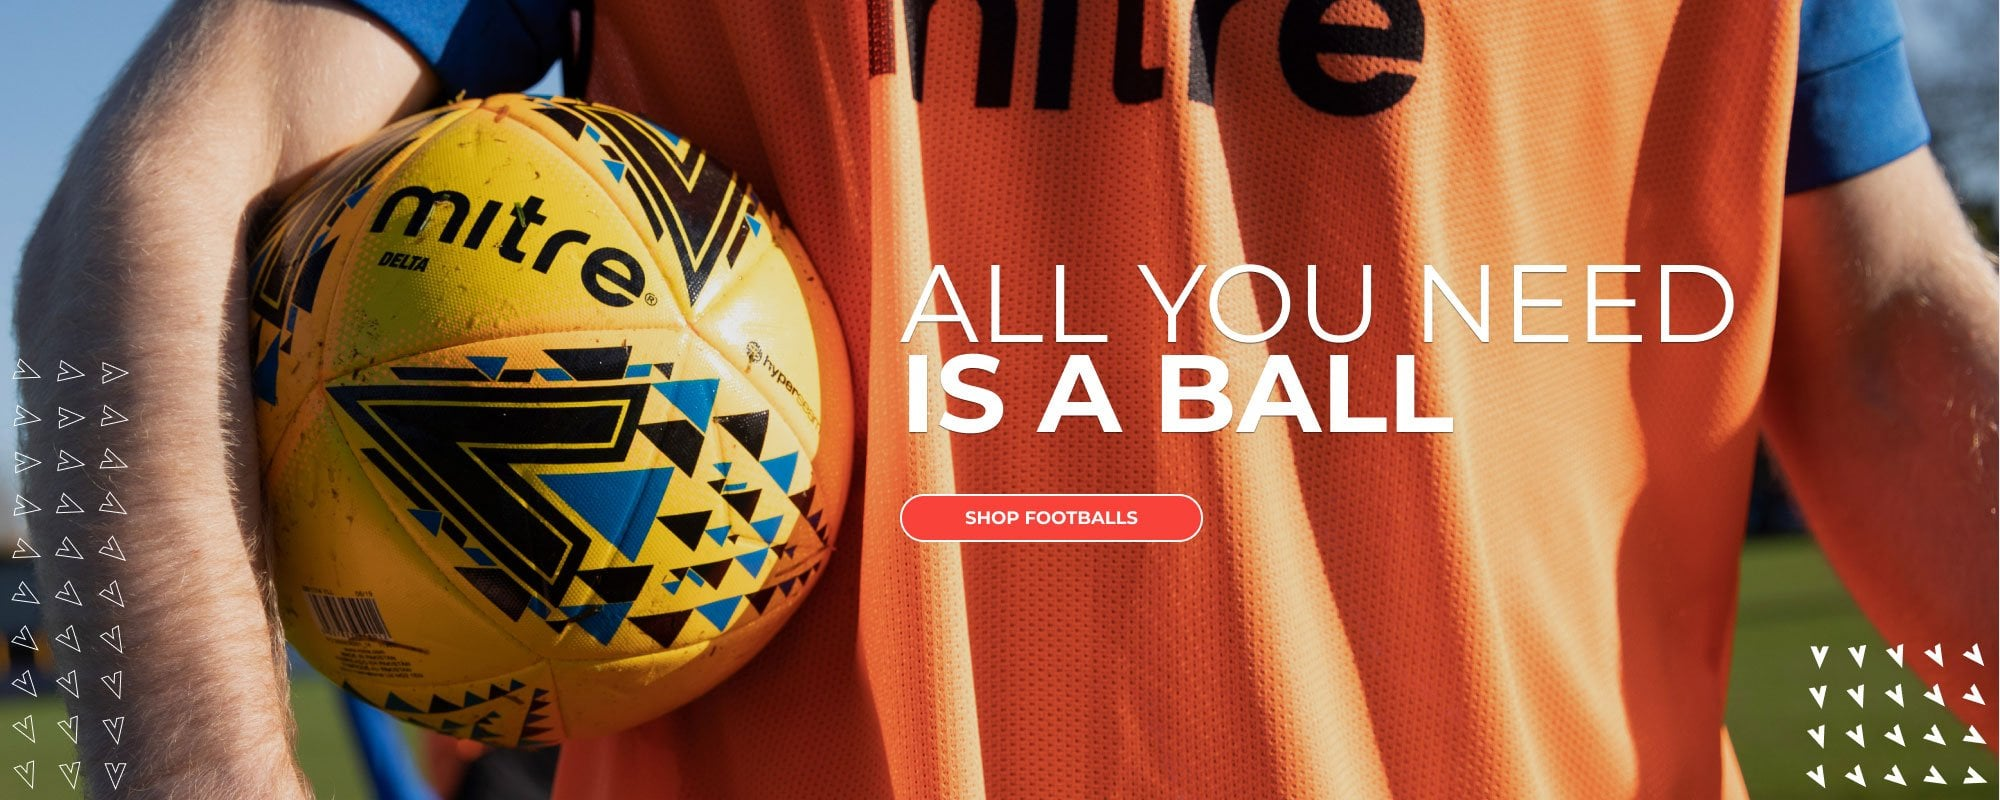 All You Need Is A Ball